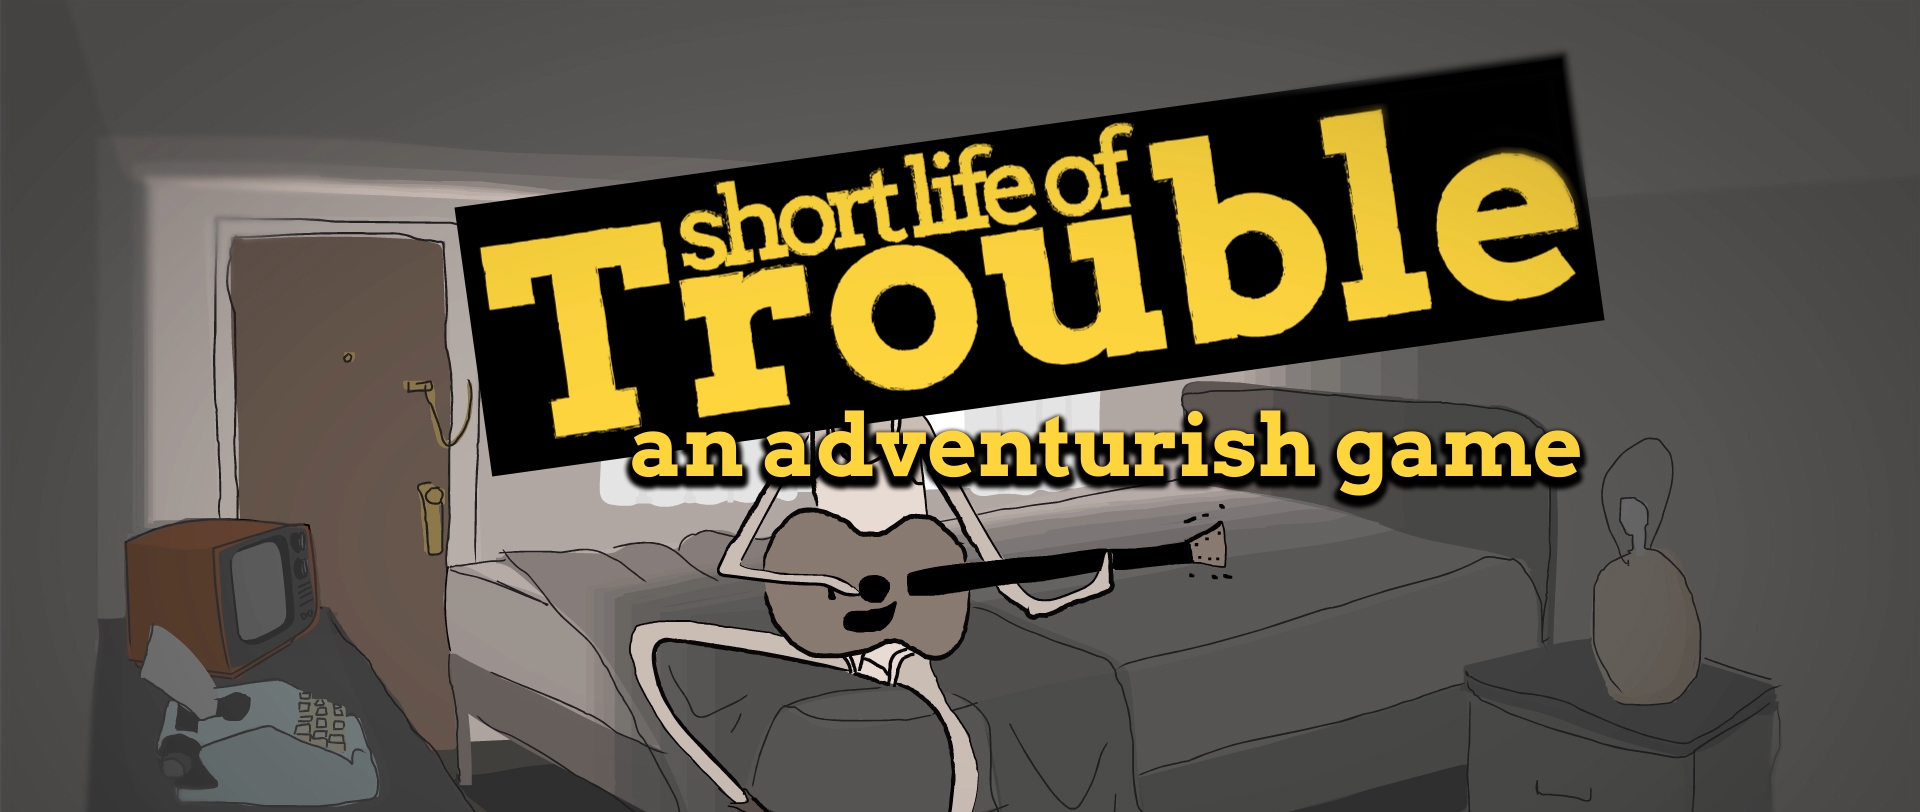 Short Life of Trouble